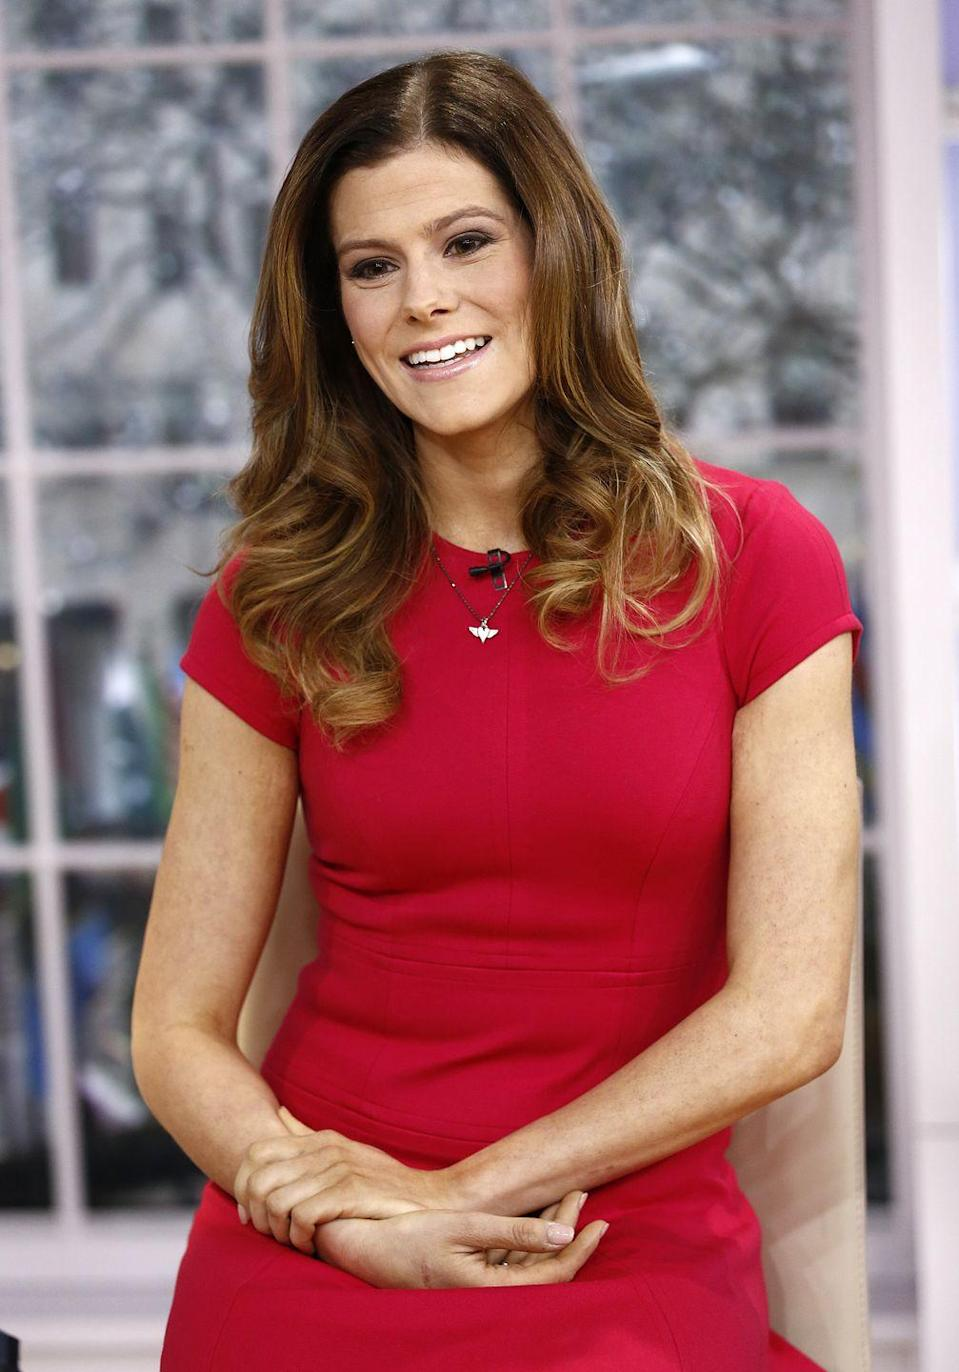 """<p>Fans were shocked when Rachel revealed at the finale that she was just 105 pounds. She had lost 60 percent of her body weight, and people were concerned it was too much. Rachel later said she lost the weight by eating 1,600 calories a day and working out. """"I'm extremely proud of the way I lost the weight,"""" she said during a media conference call, per the <a href=""""https://www.latimes.com/entertainment/tv/showtracker/la-et-st-biggest-loser-winner-rachel-frederickson-20140205-story.html"""" rel=""""nofollow noopener"""" target=""""_blank"""" data-ylk=""""slk:Los Angeles Times"""" class=""""link rapid-noclick-resp""""><em>Los Angeles Times</em></a>.</p>"""